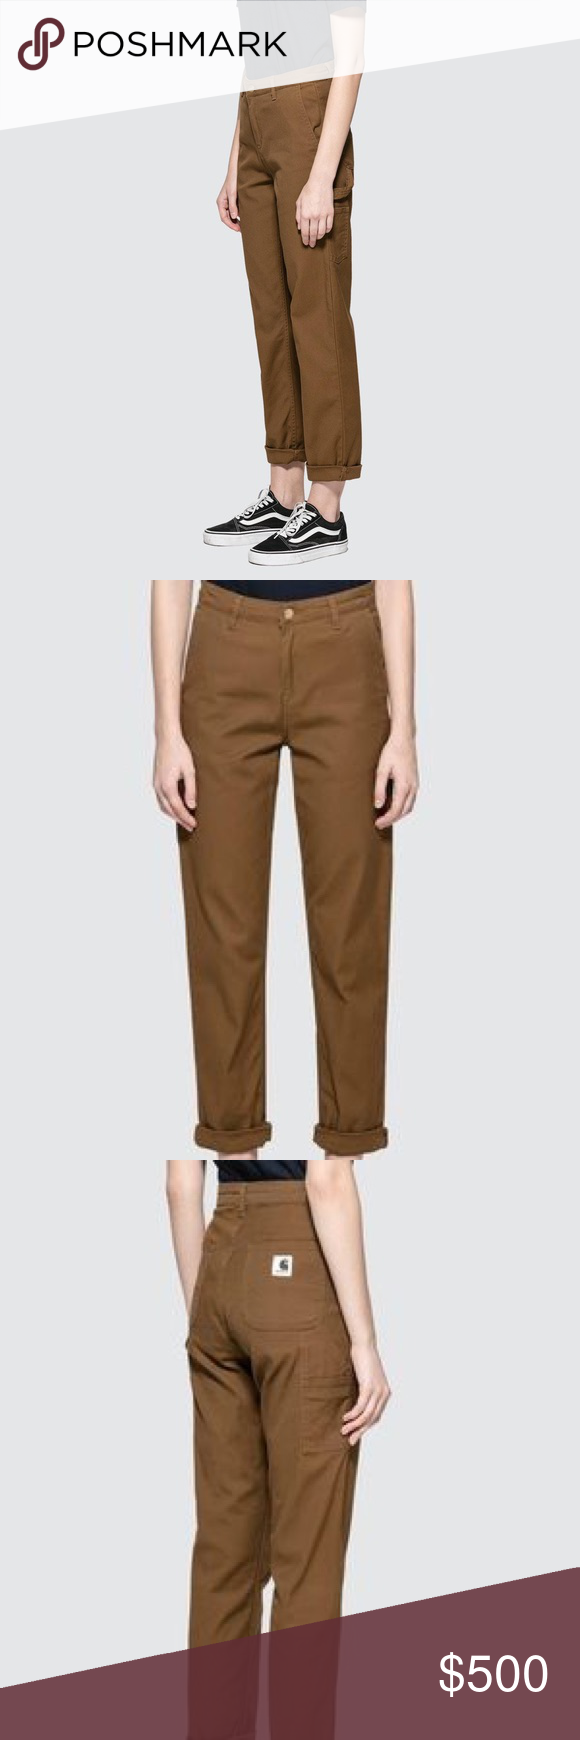 fc3e7cbdaee4 ISO CARHARTT WIP PIERCE PANT Looking for the Madewell Carhartt Work in Progress  Pierce pant in 29 or 30. Madewell Pants